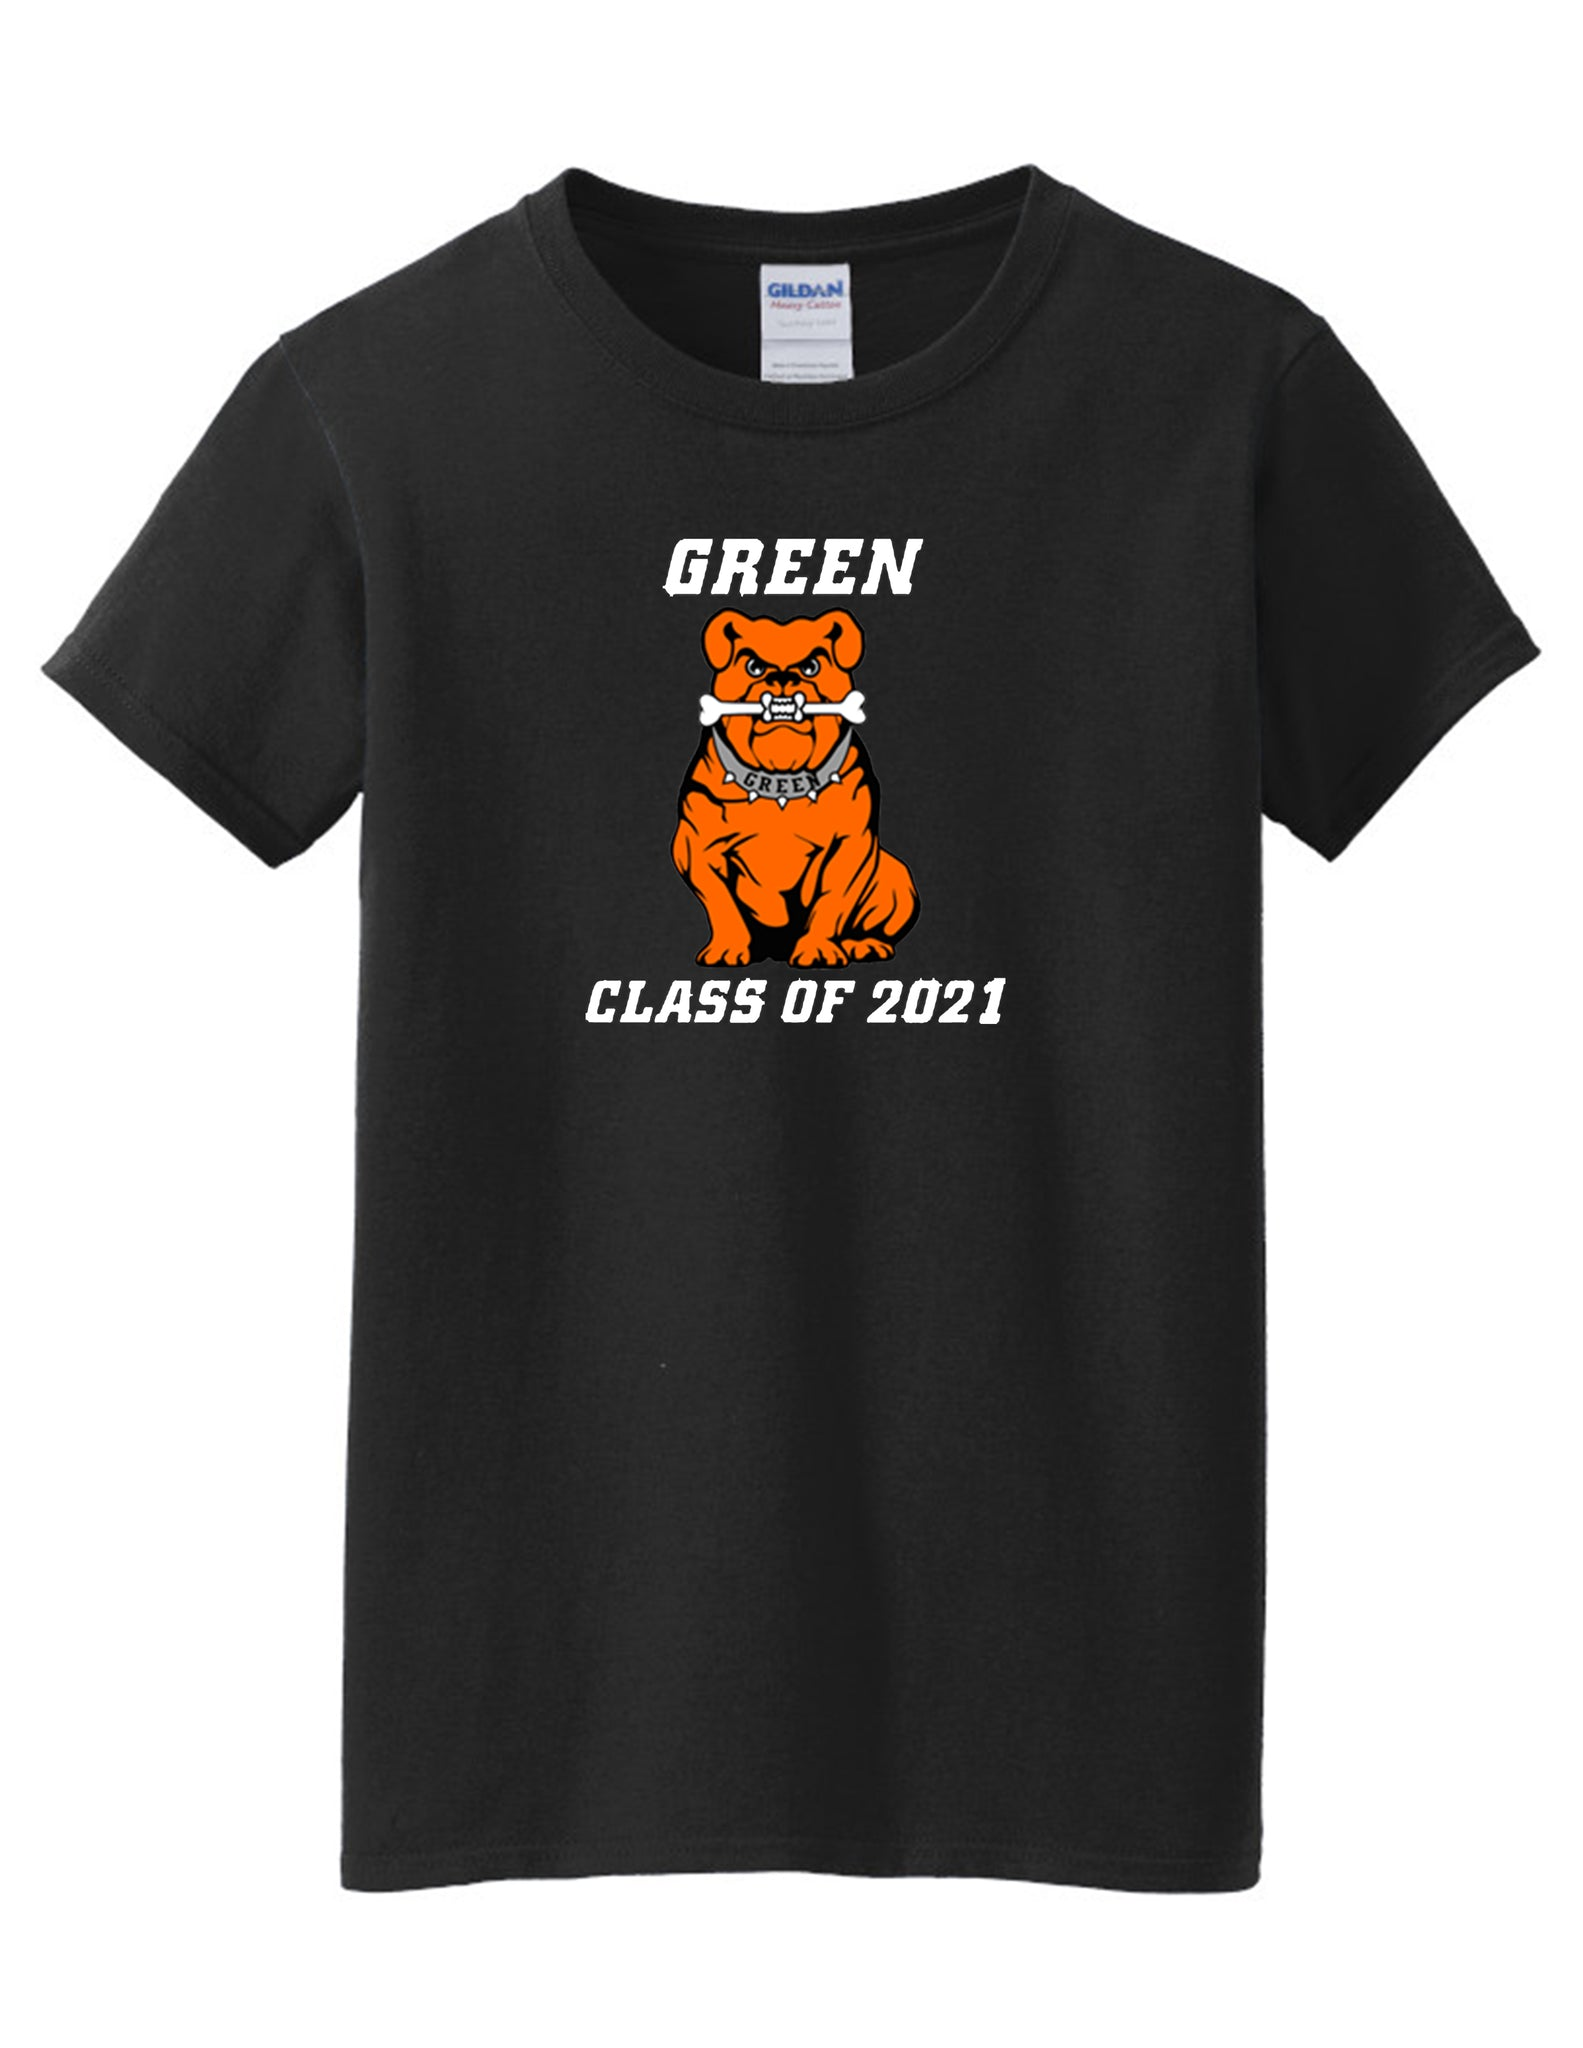 Green Class of 2021 Women's Short Sleeve Tee